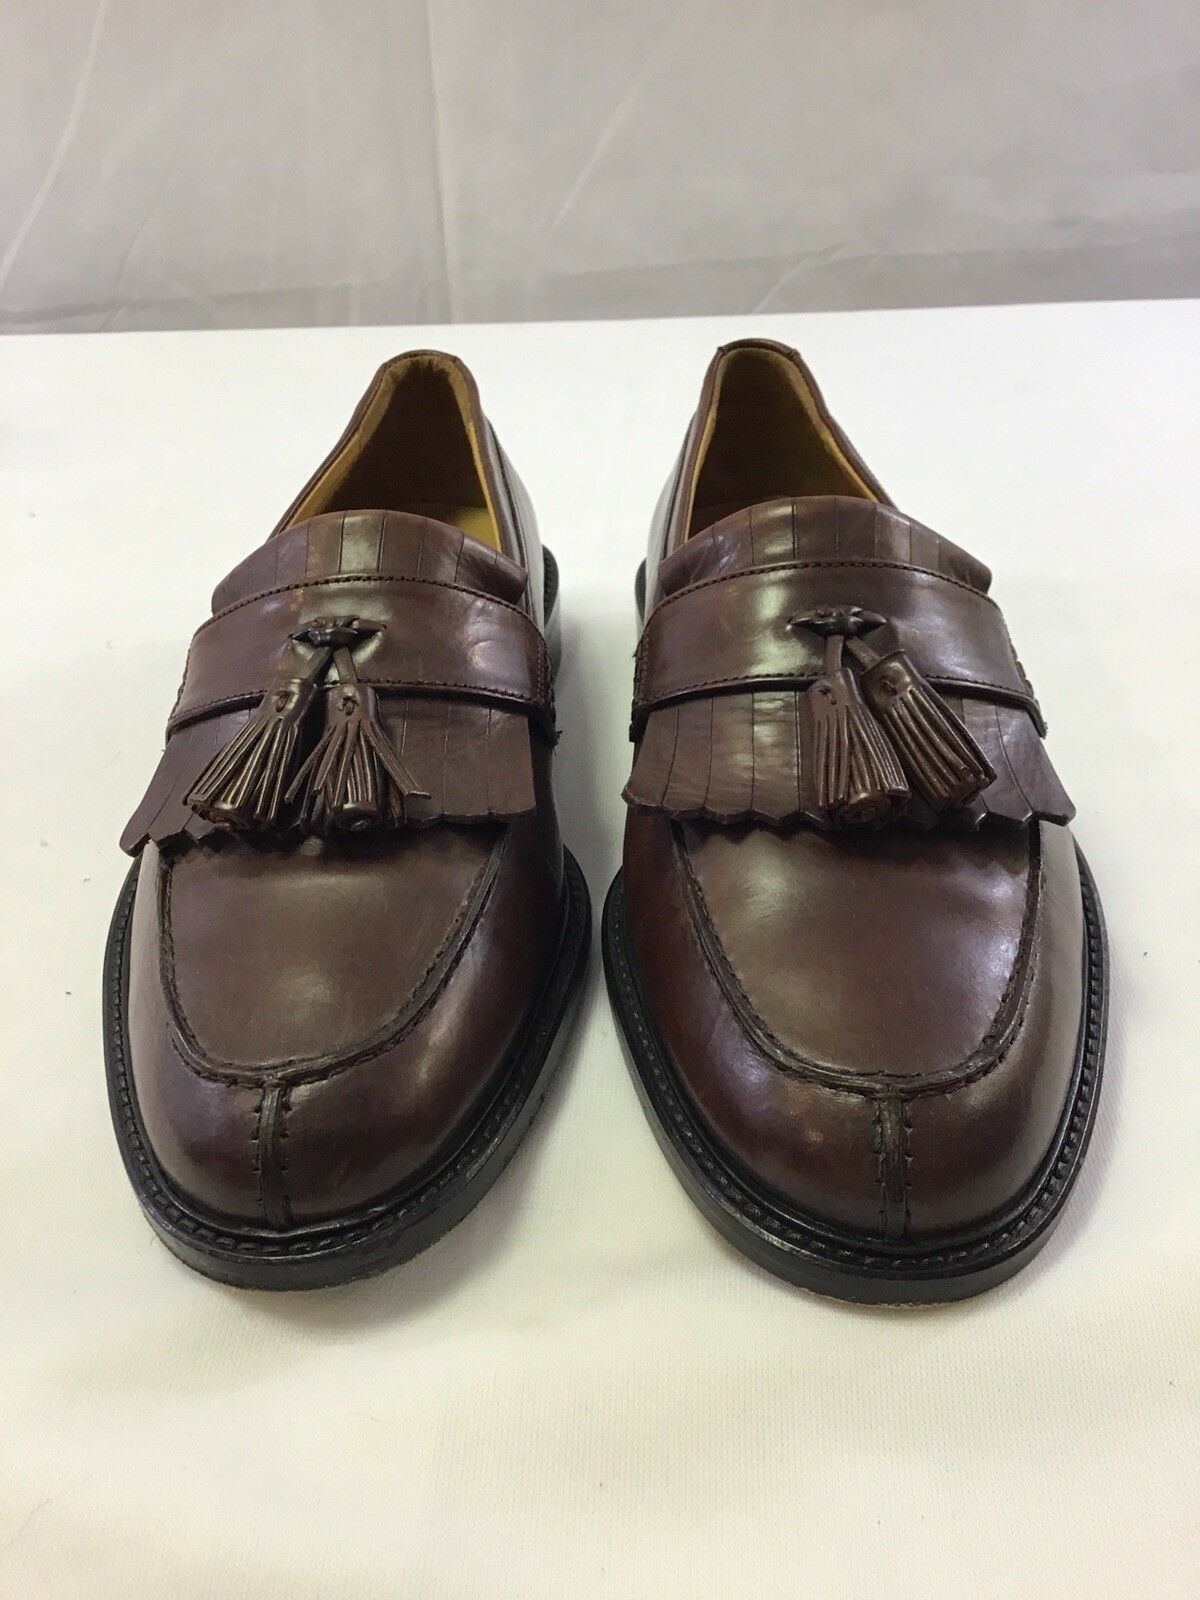 Johnson And Murphy Men's shoes Sz 7.5 m Brown Tassel Loafers 151140 Dress Work